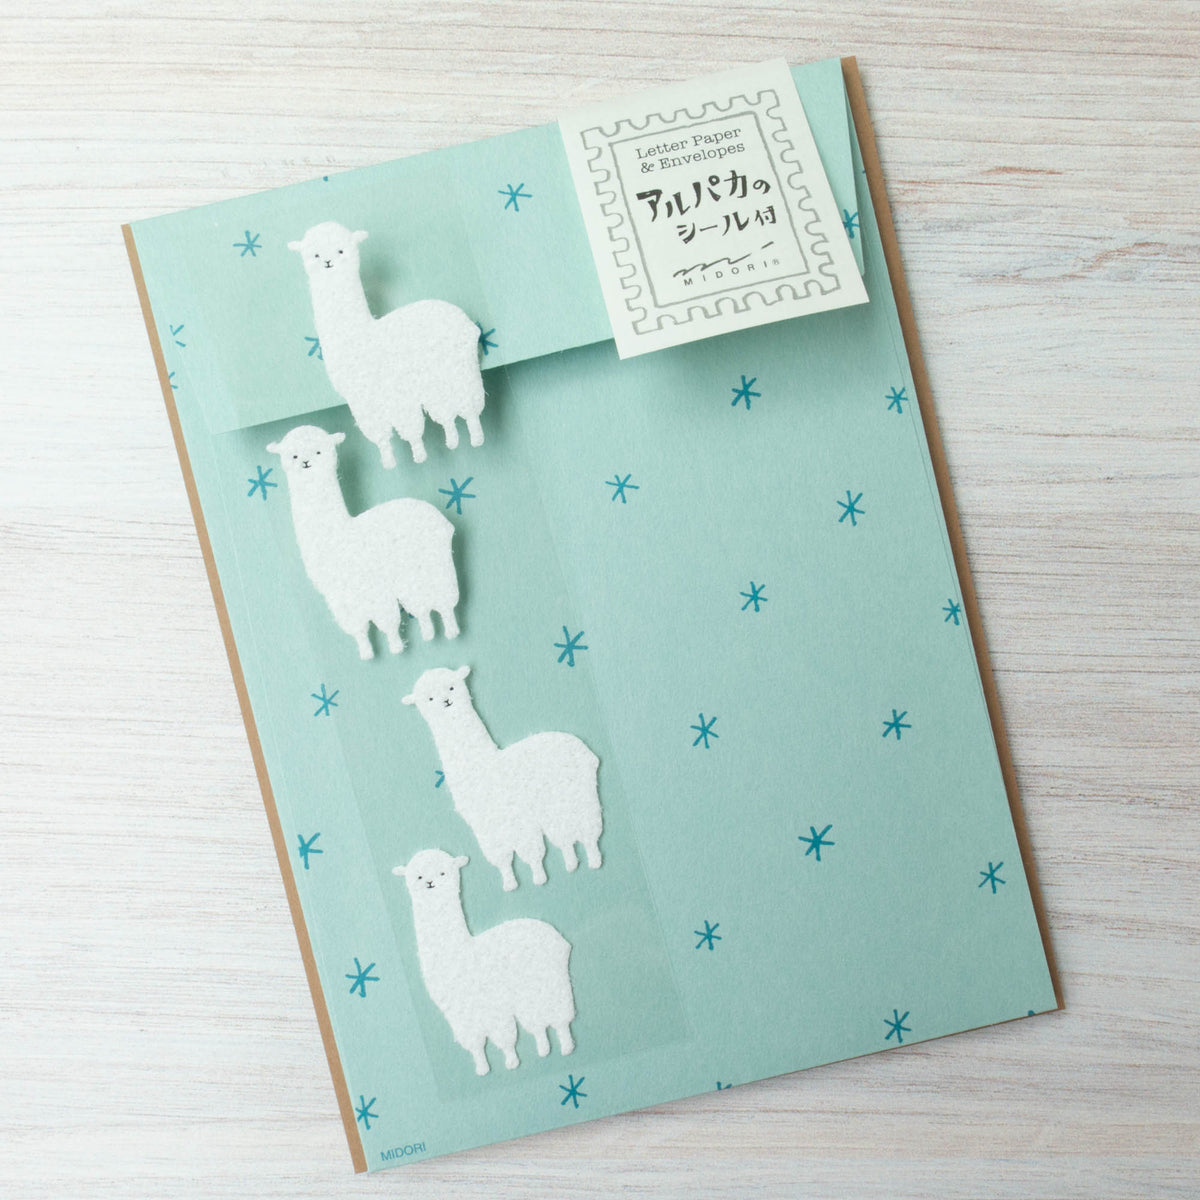 Japanese Letter Writing Set - Alpacas